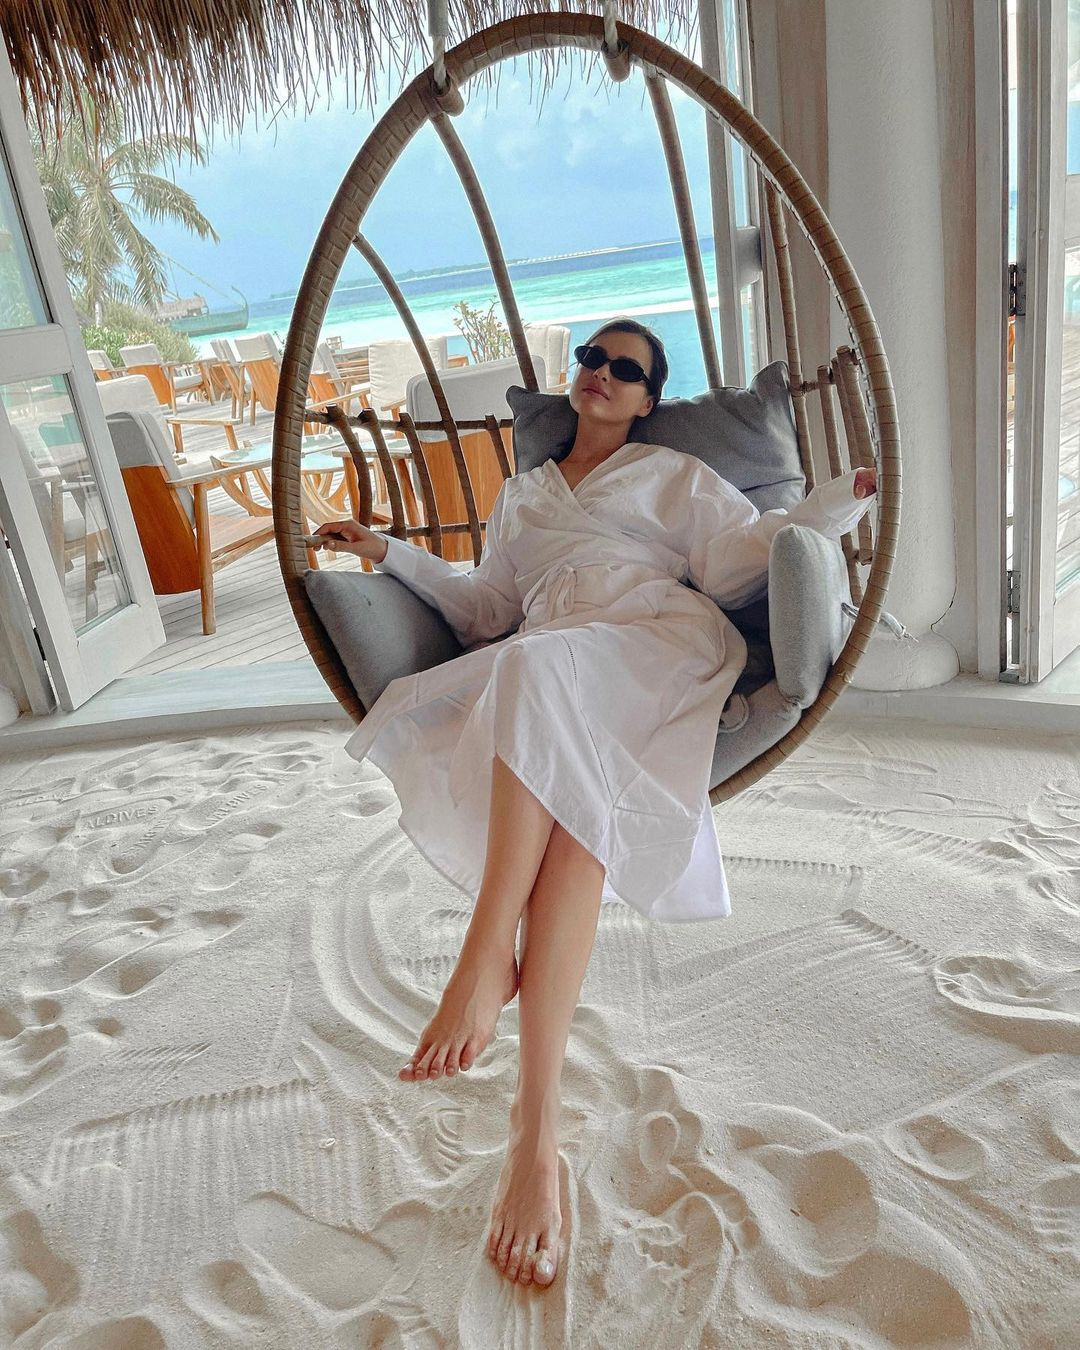 Elena Temnikova showed appetizing buttocks during a vacation in the Maldives